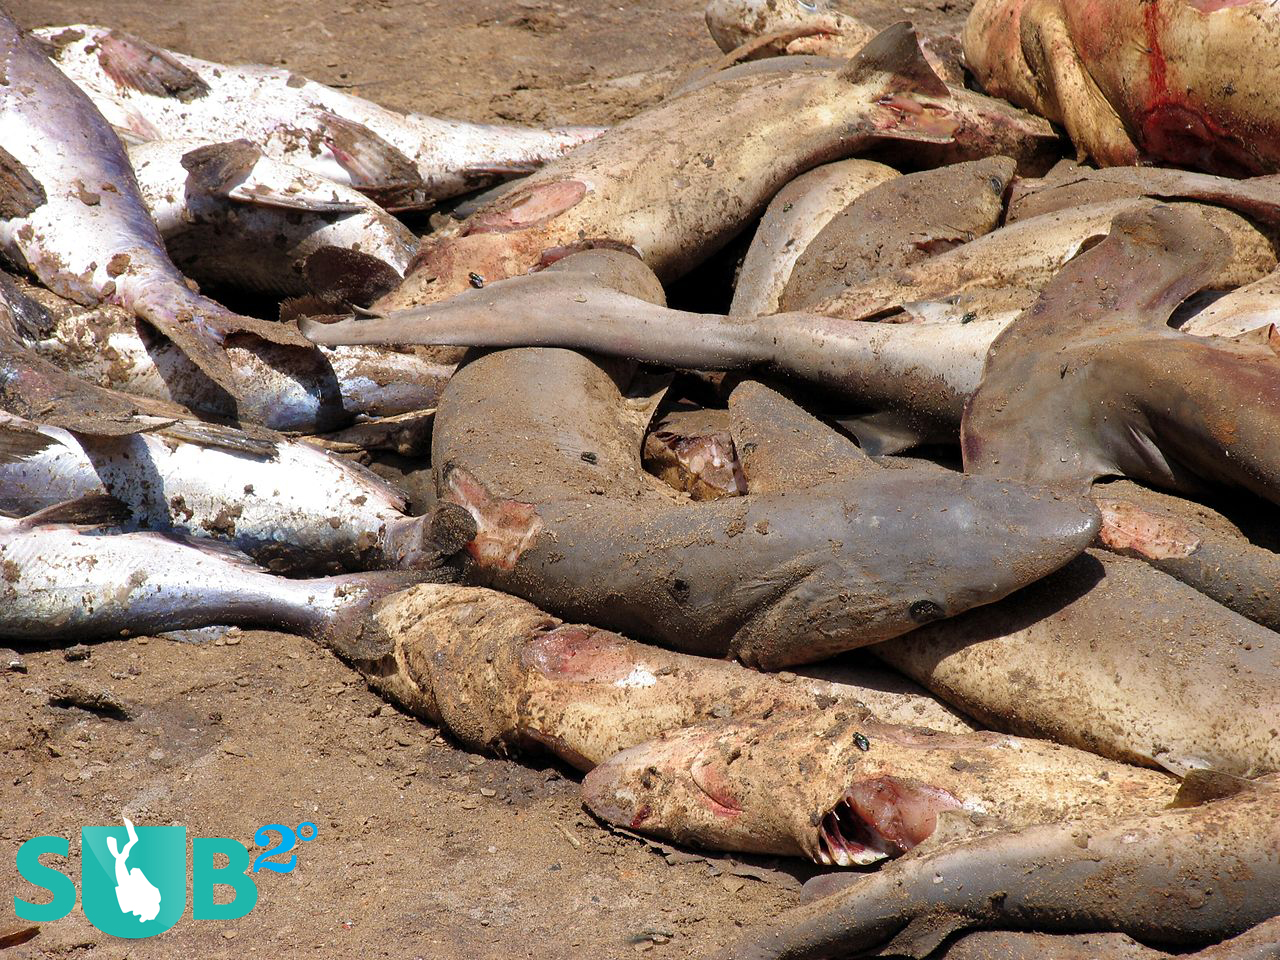 Dead sharks lie on the beach in Senegal, after having their fins cut off.